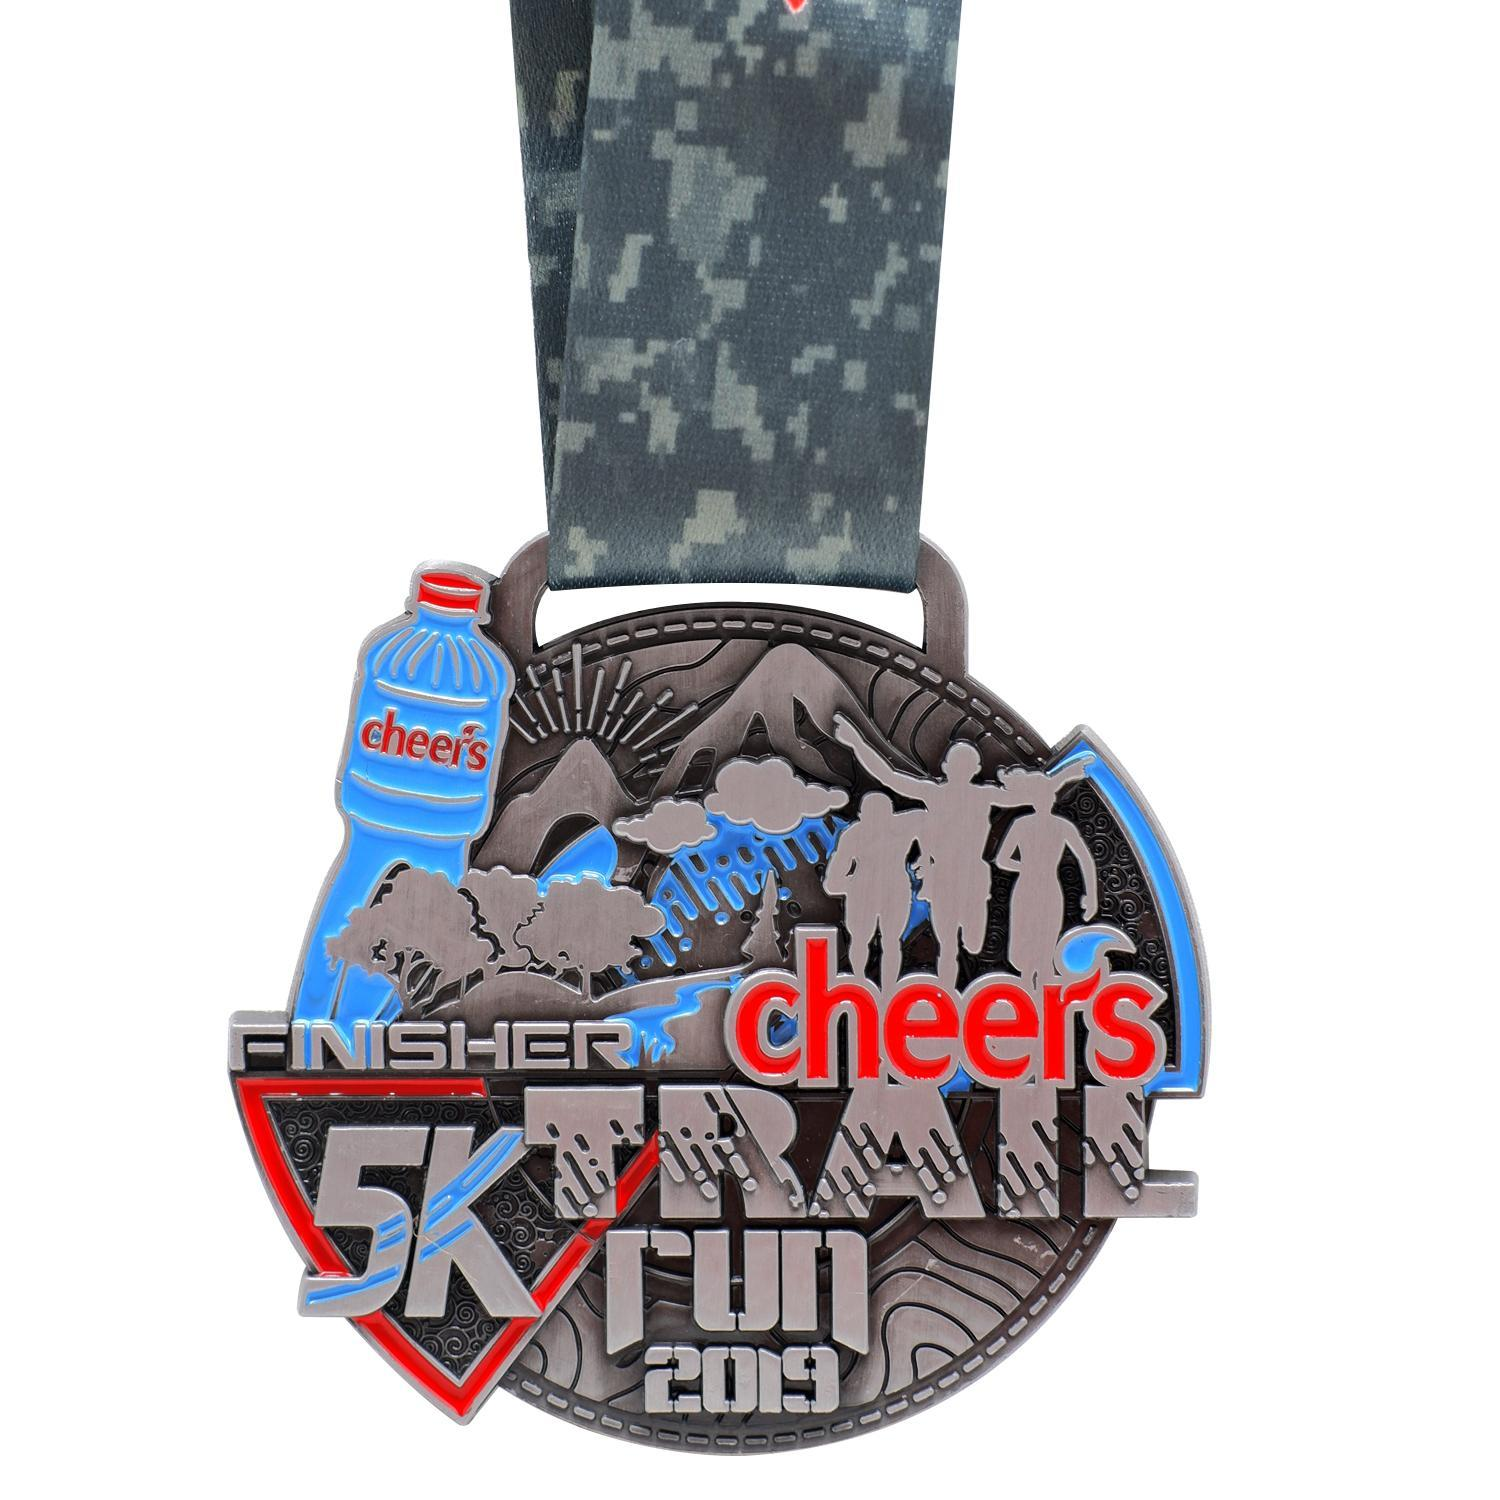 Cheers Trail Run 2019